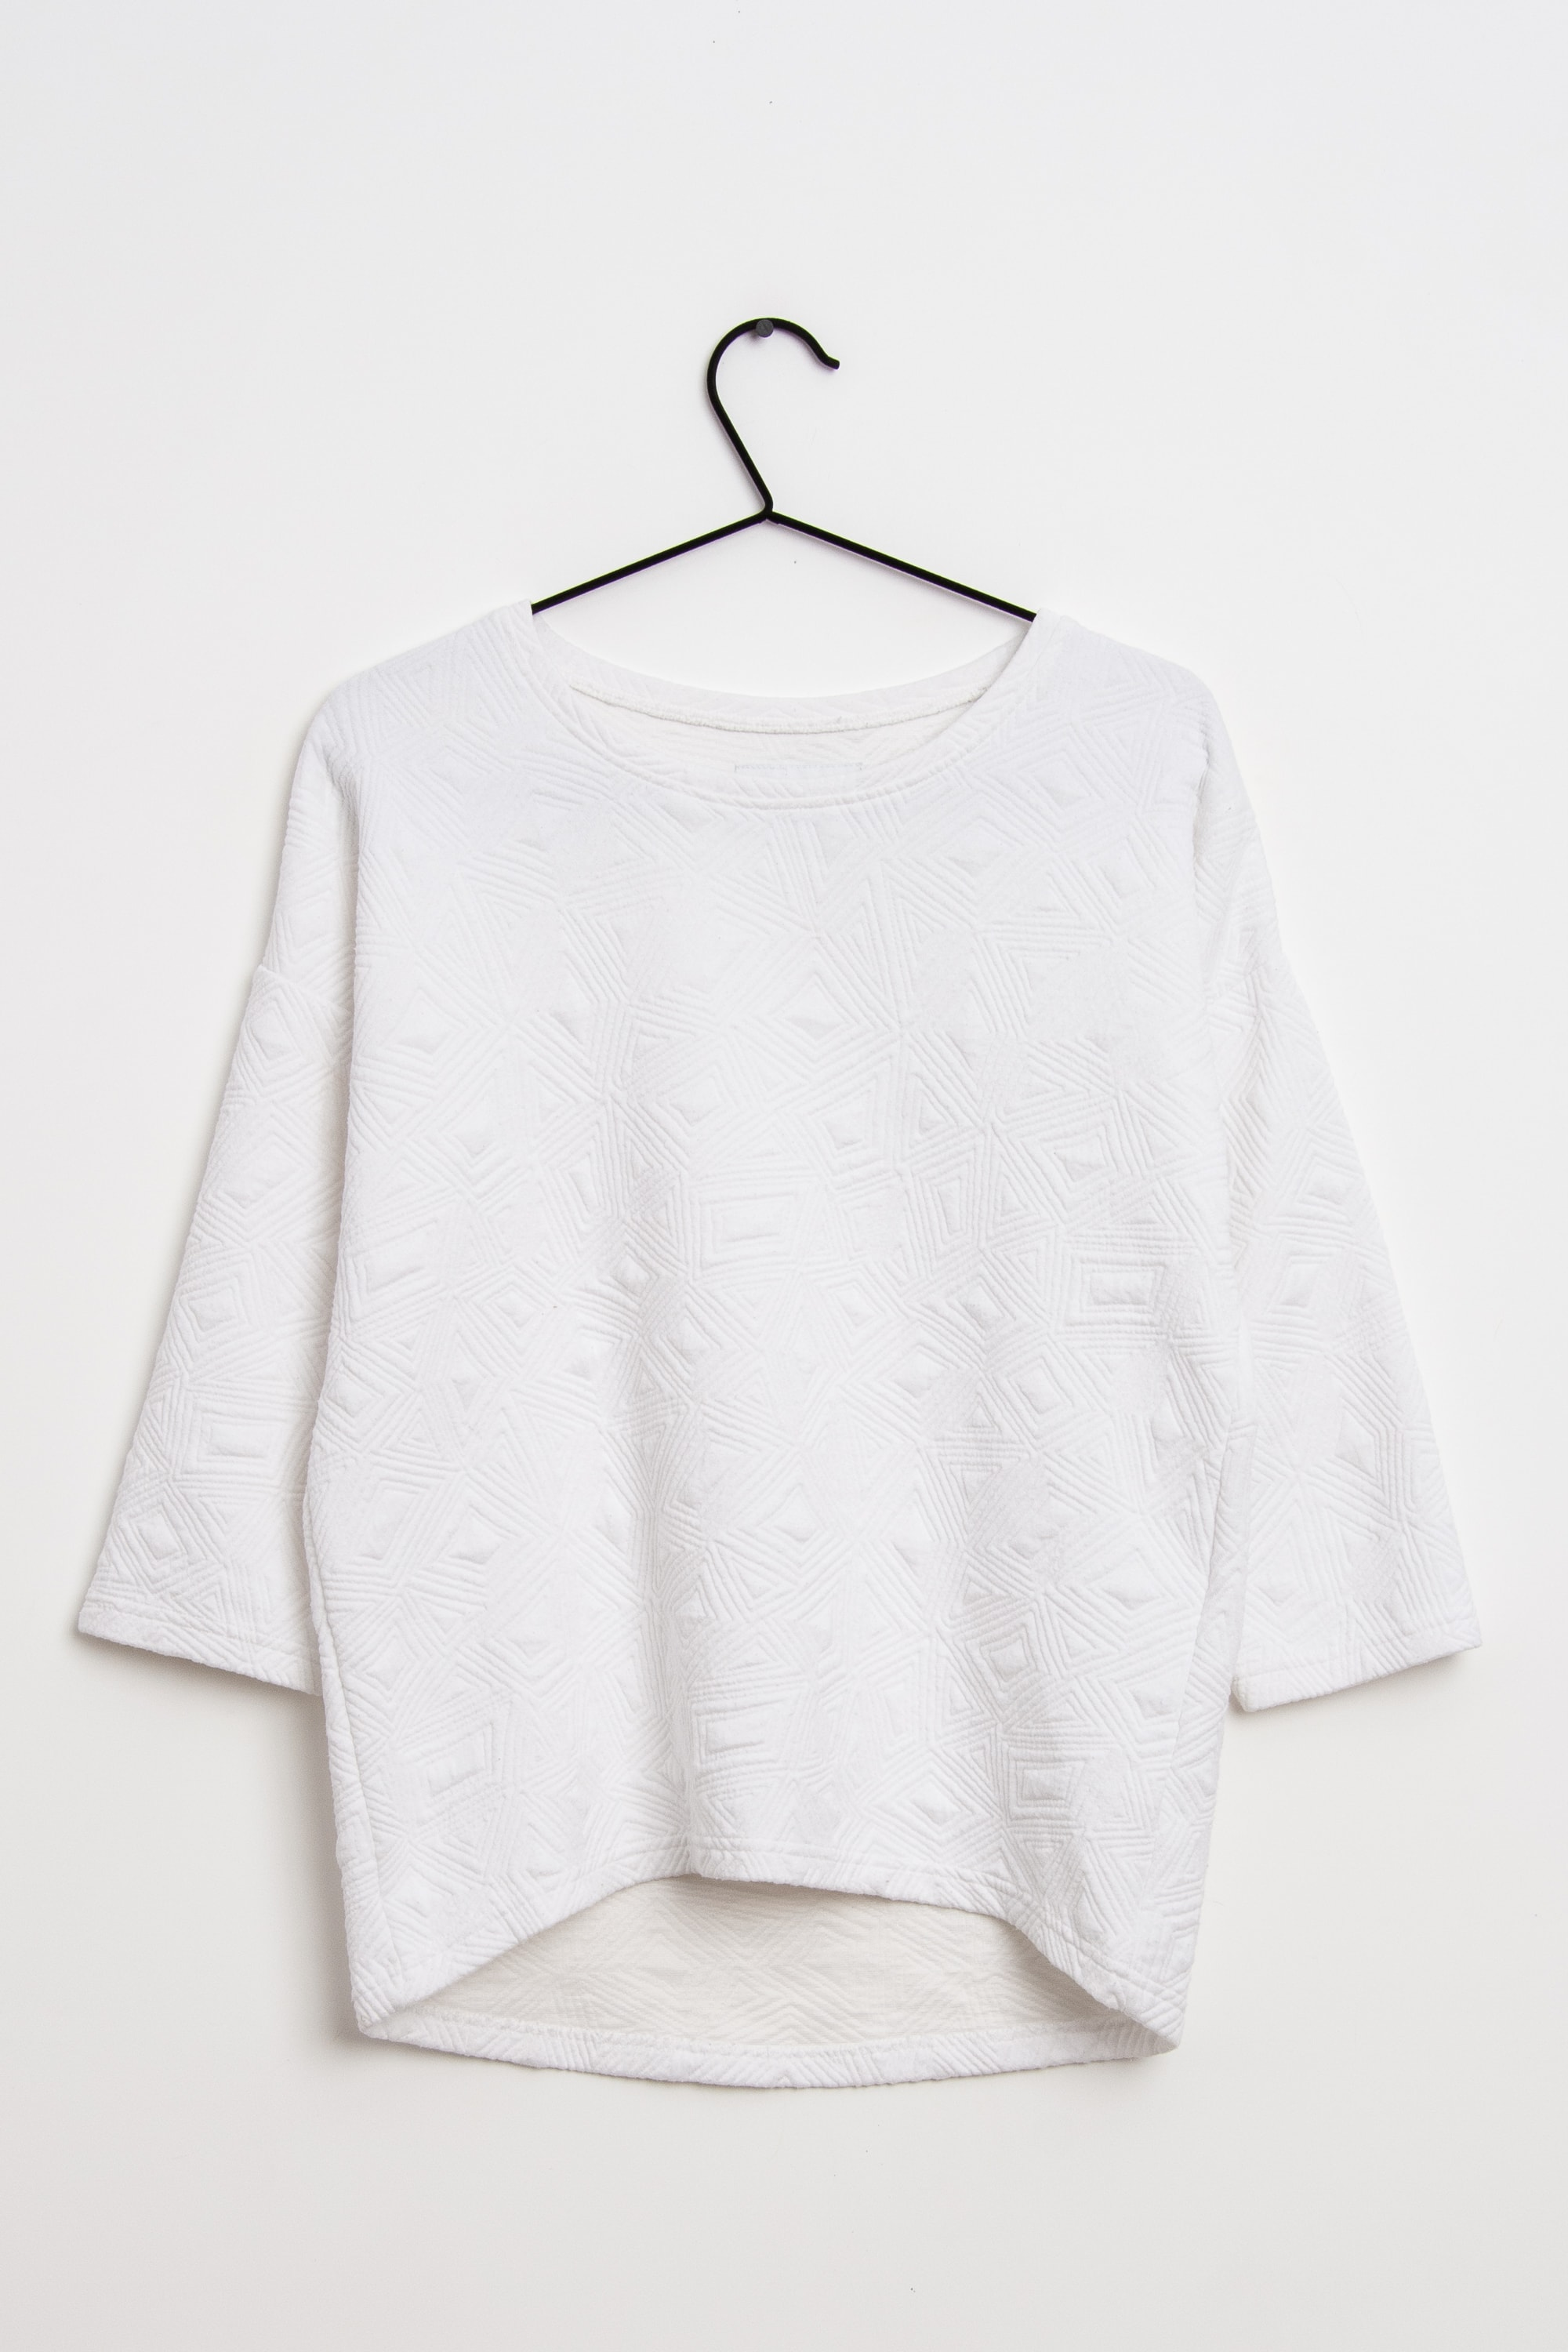 Sparkz Sweat / Fleece Weiß Gr.XS